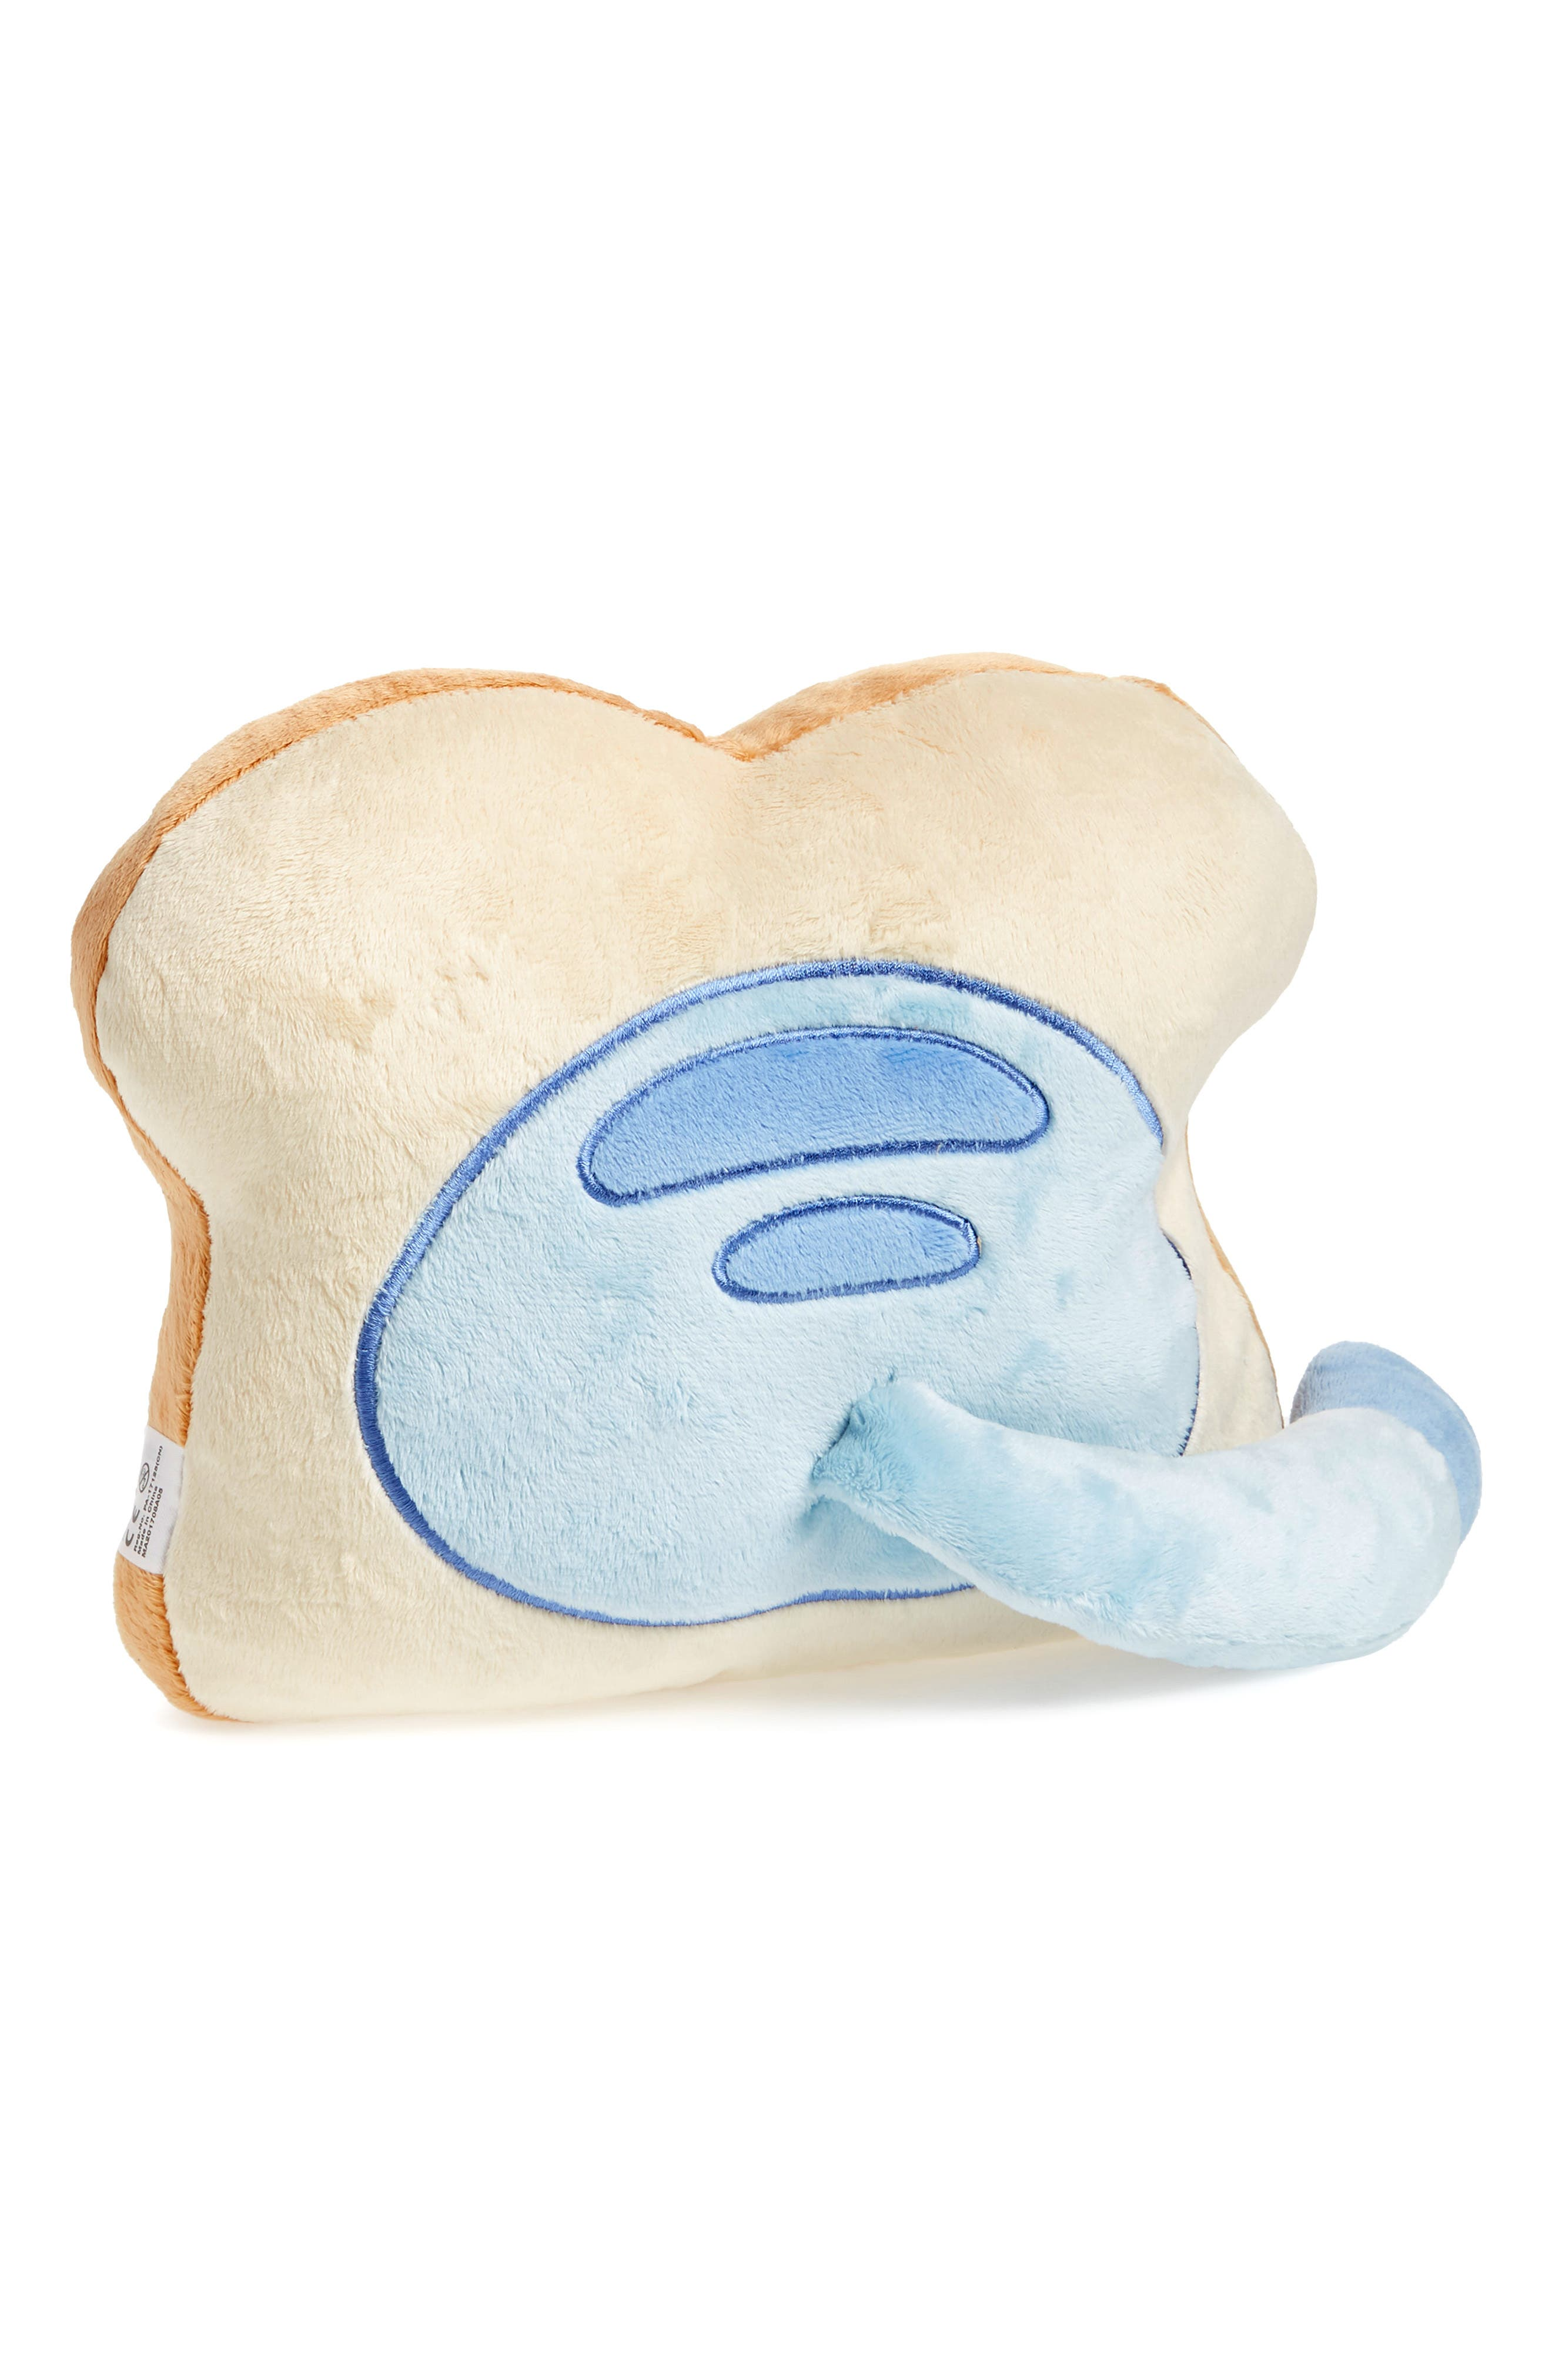 Cat Bread Stuffed Pillow,                             Alternate thumbnail 3, color,                             270